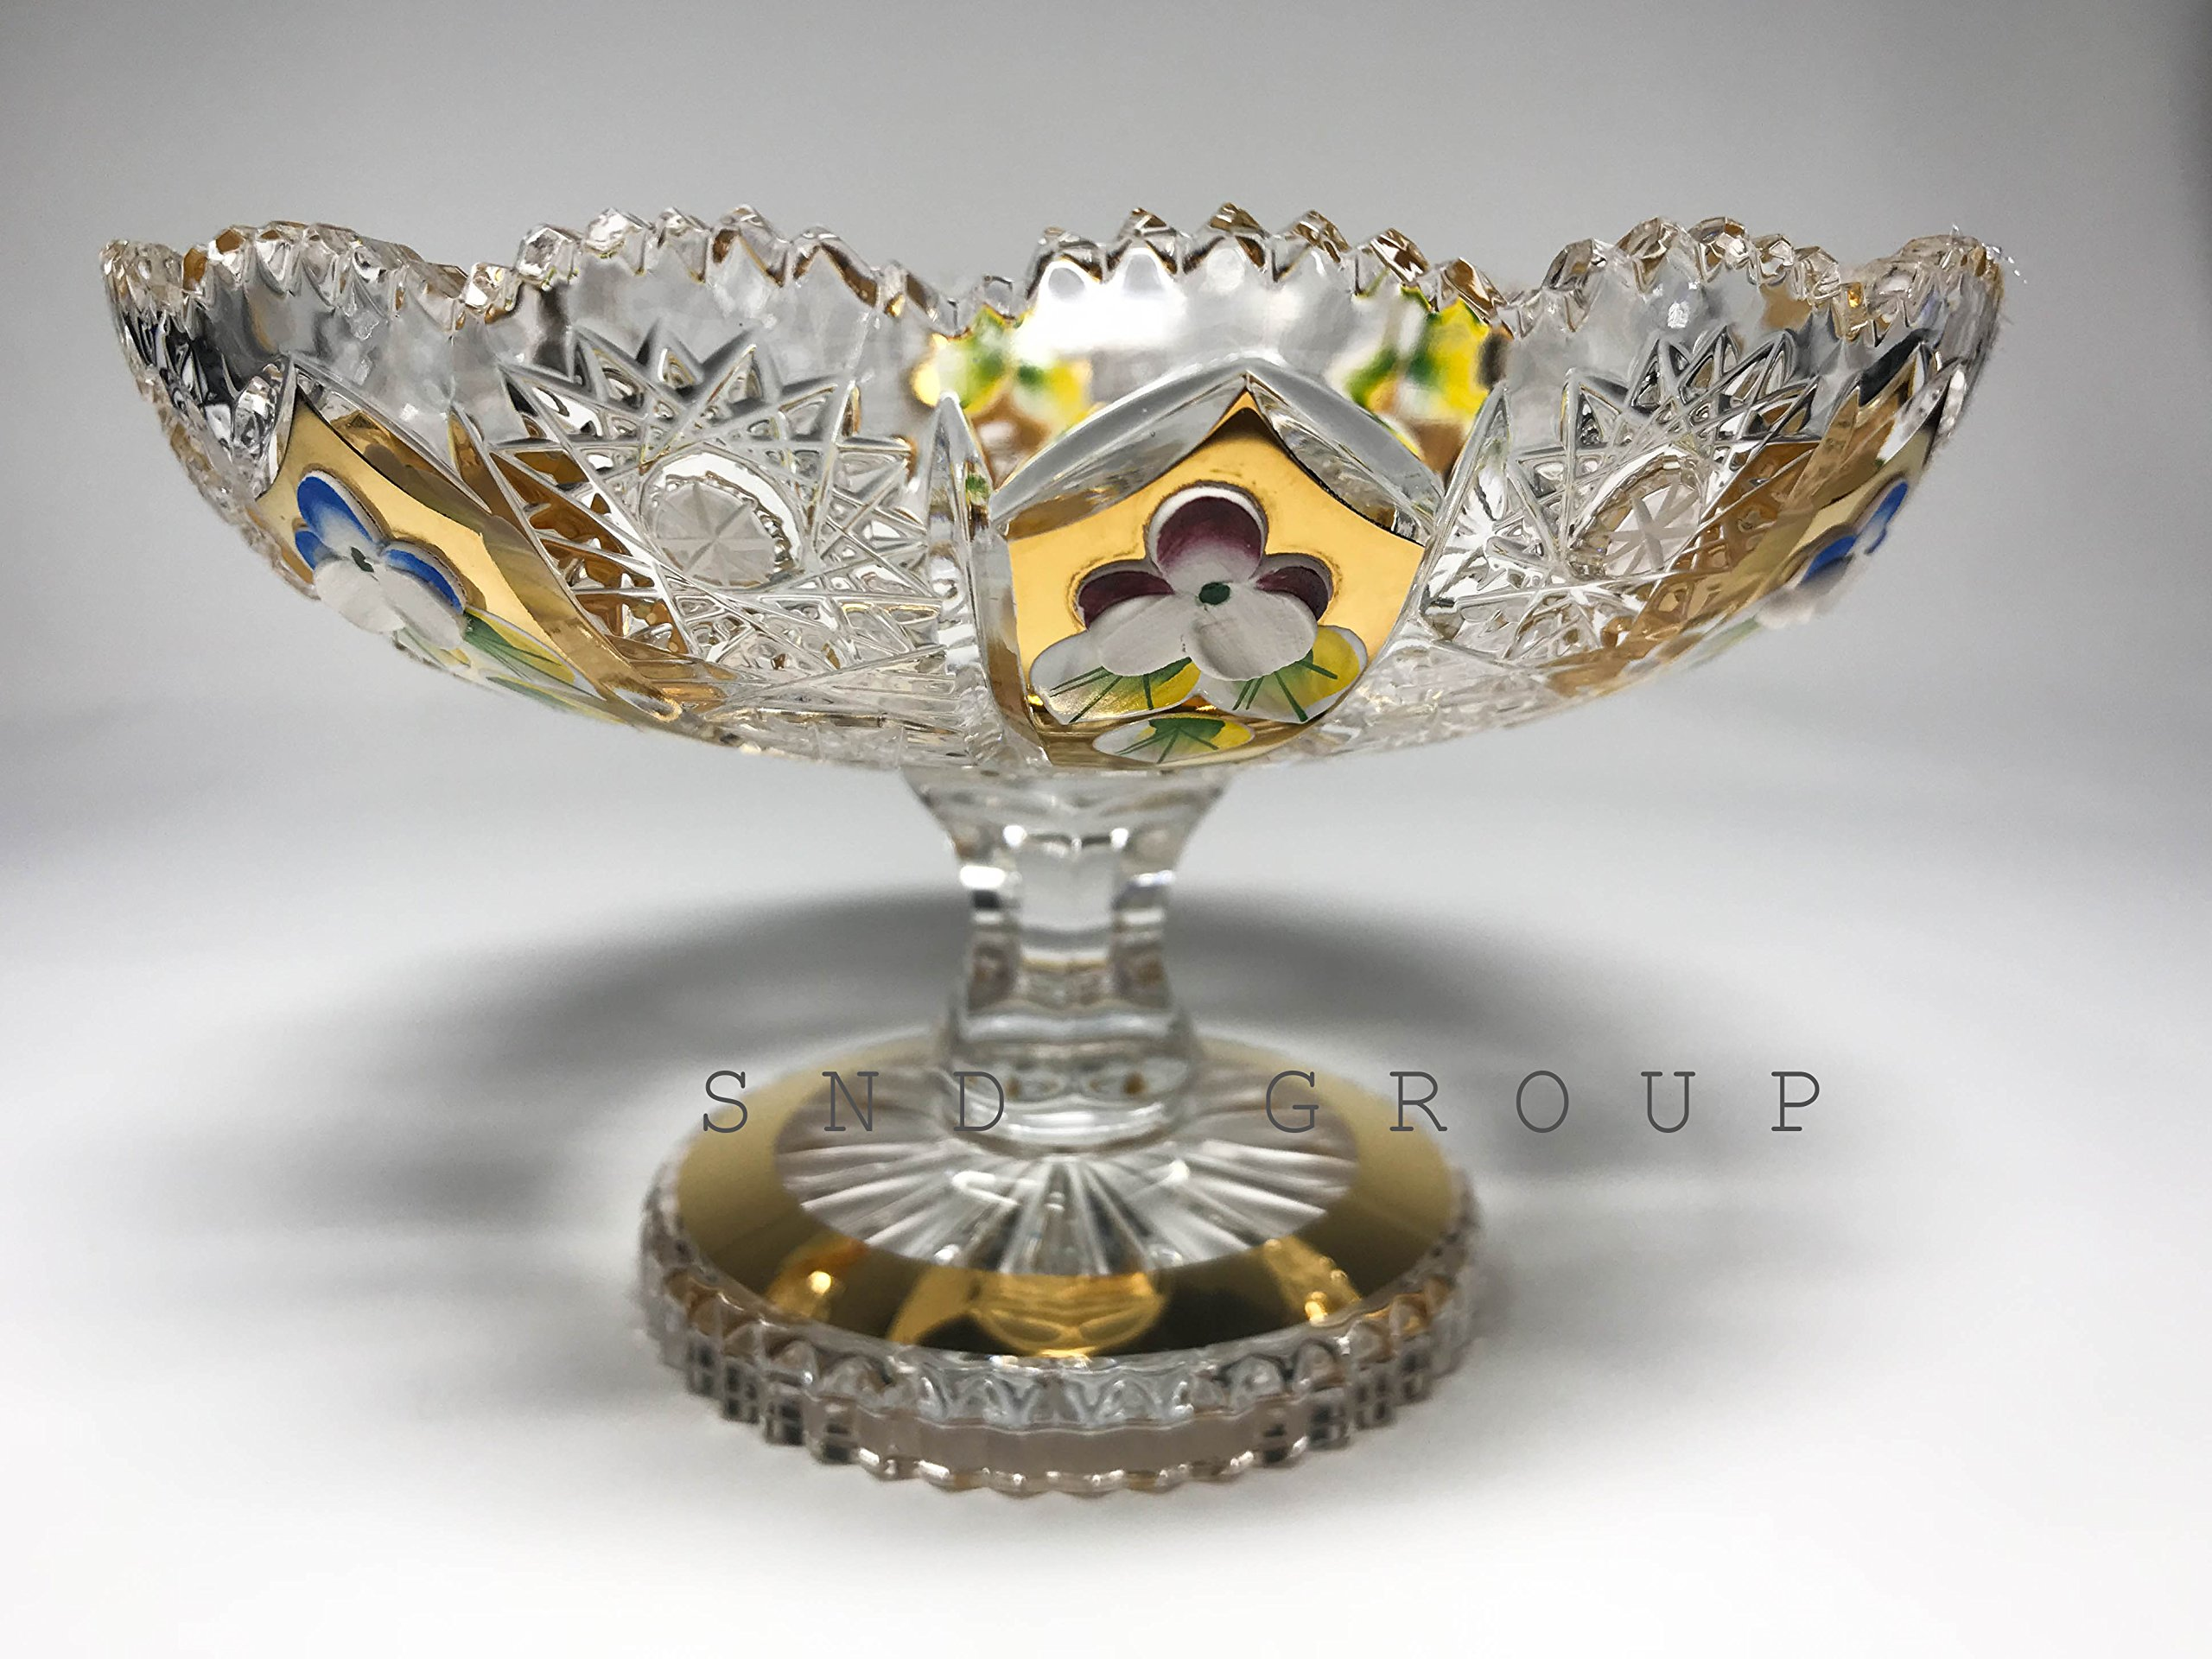 BOHEMIAN CRYSTAL GLASS FOOTED BOWL-VASE D-6'' HAND CUT HAND DECORATED WEDDING GIFT GOLD PLATED VINTAGE EUROPEAN DESIGN ELEGANT CENTERPIECE DISH FRUITS DESSERTS CANDIES CLASSIC CZECH CRYSTAL GLASS